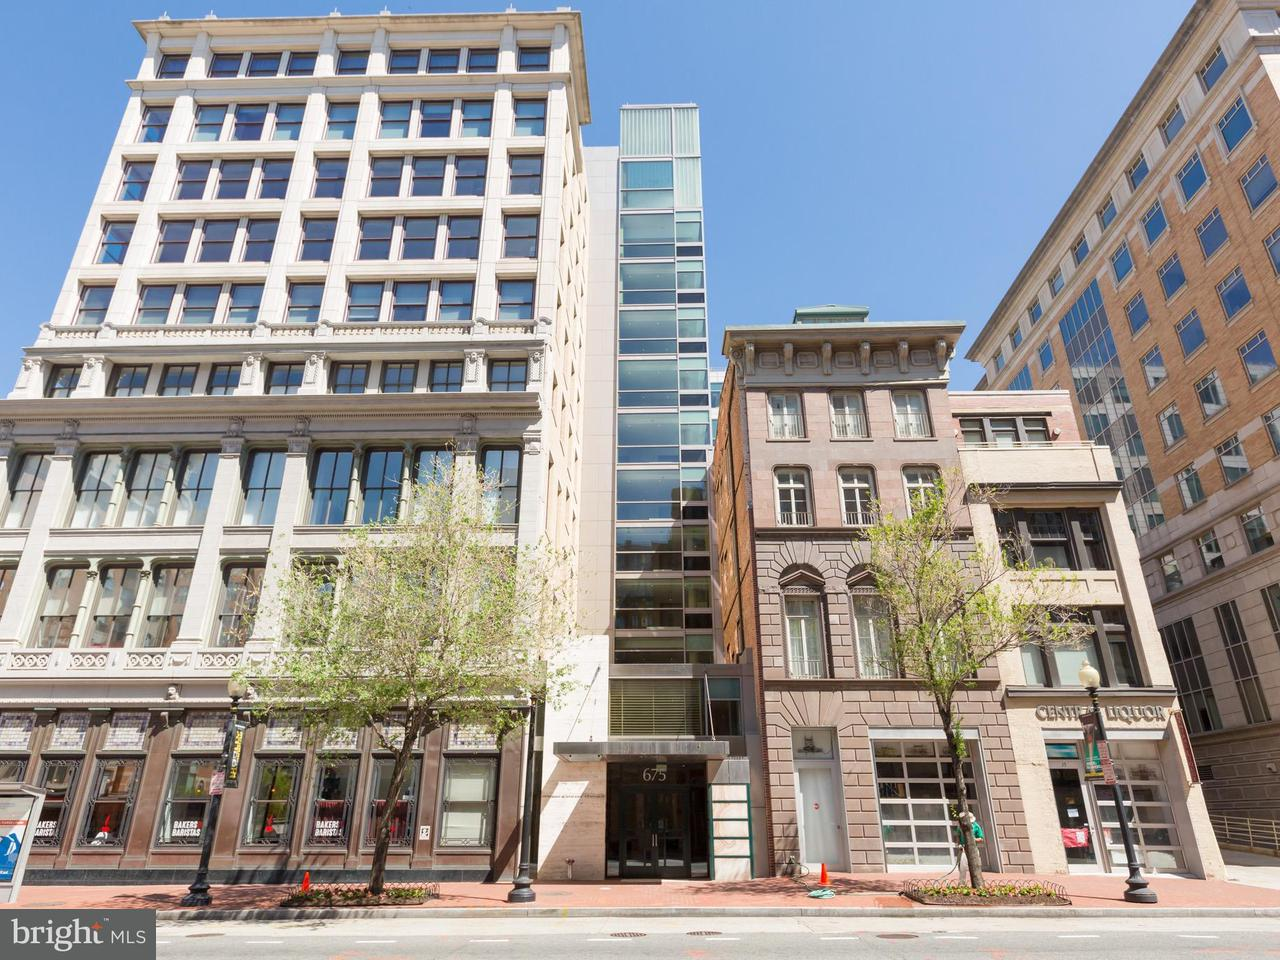 Condominium for Rent at 675 E St NW #200 Washington, District Of Columbia 20004 United States